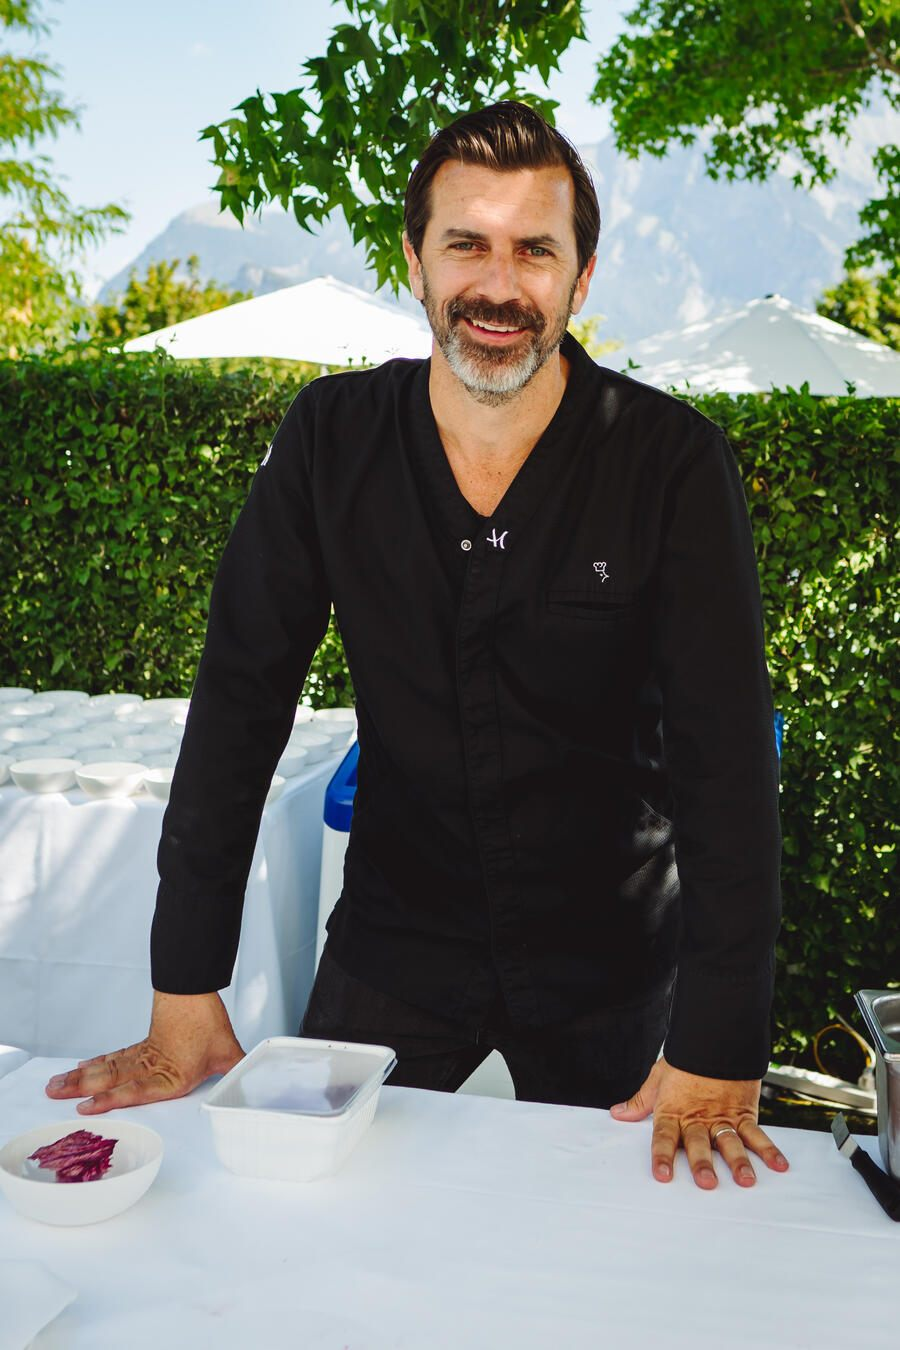 Andreas Caminada, Schloss Schauenstein - Gault&Millau Garden Party - 19. August 2018 - Bad Ragaz - Copyright Olivia Pulver